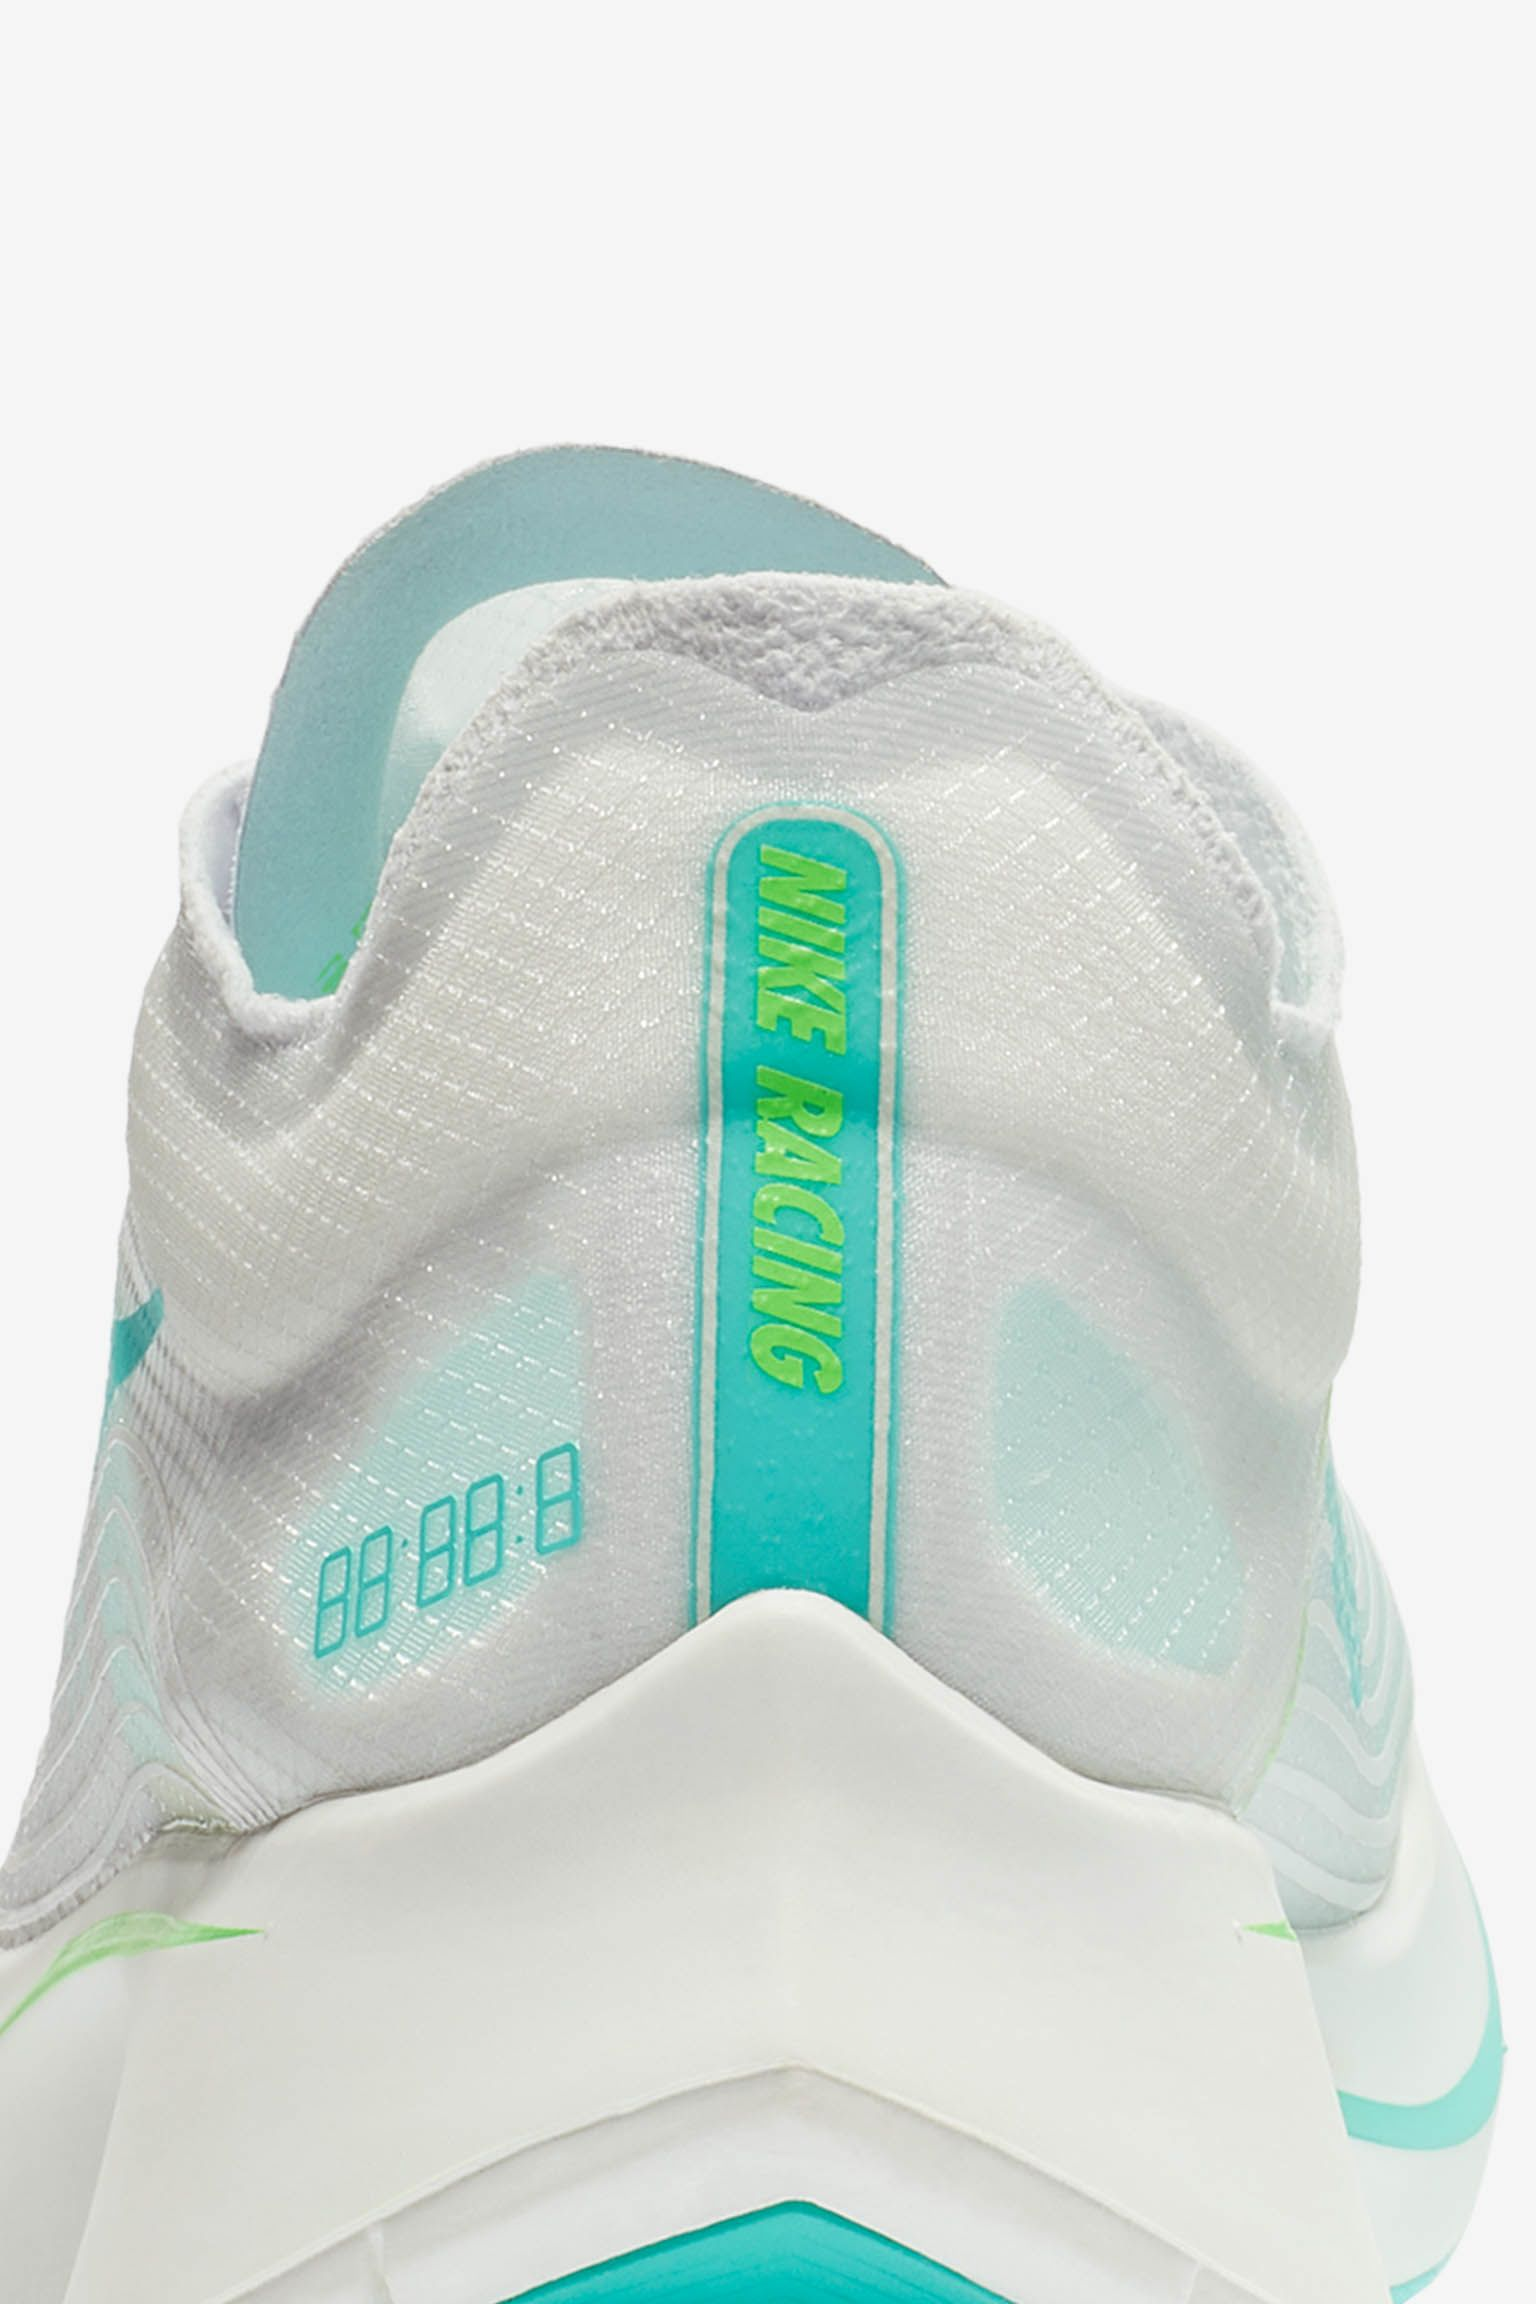 Nike Zoom Fly SP 'White & Rage Green' Release Date